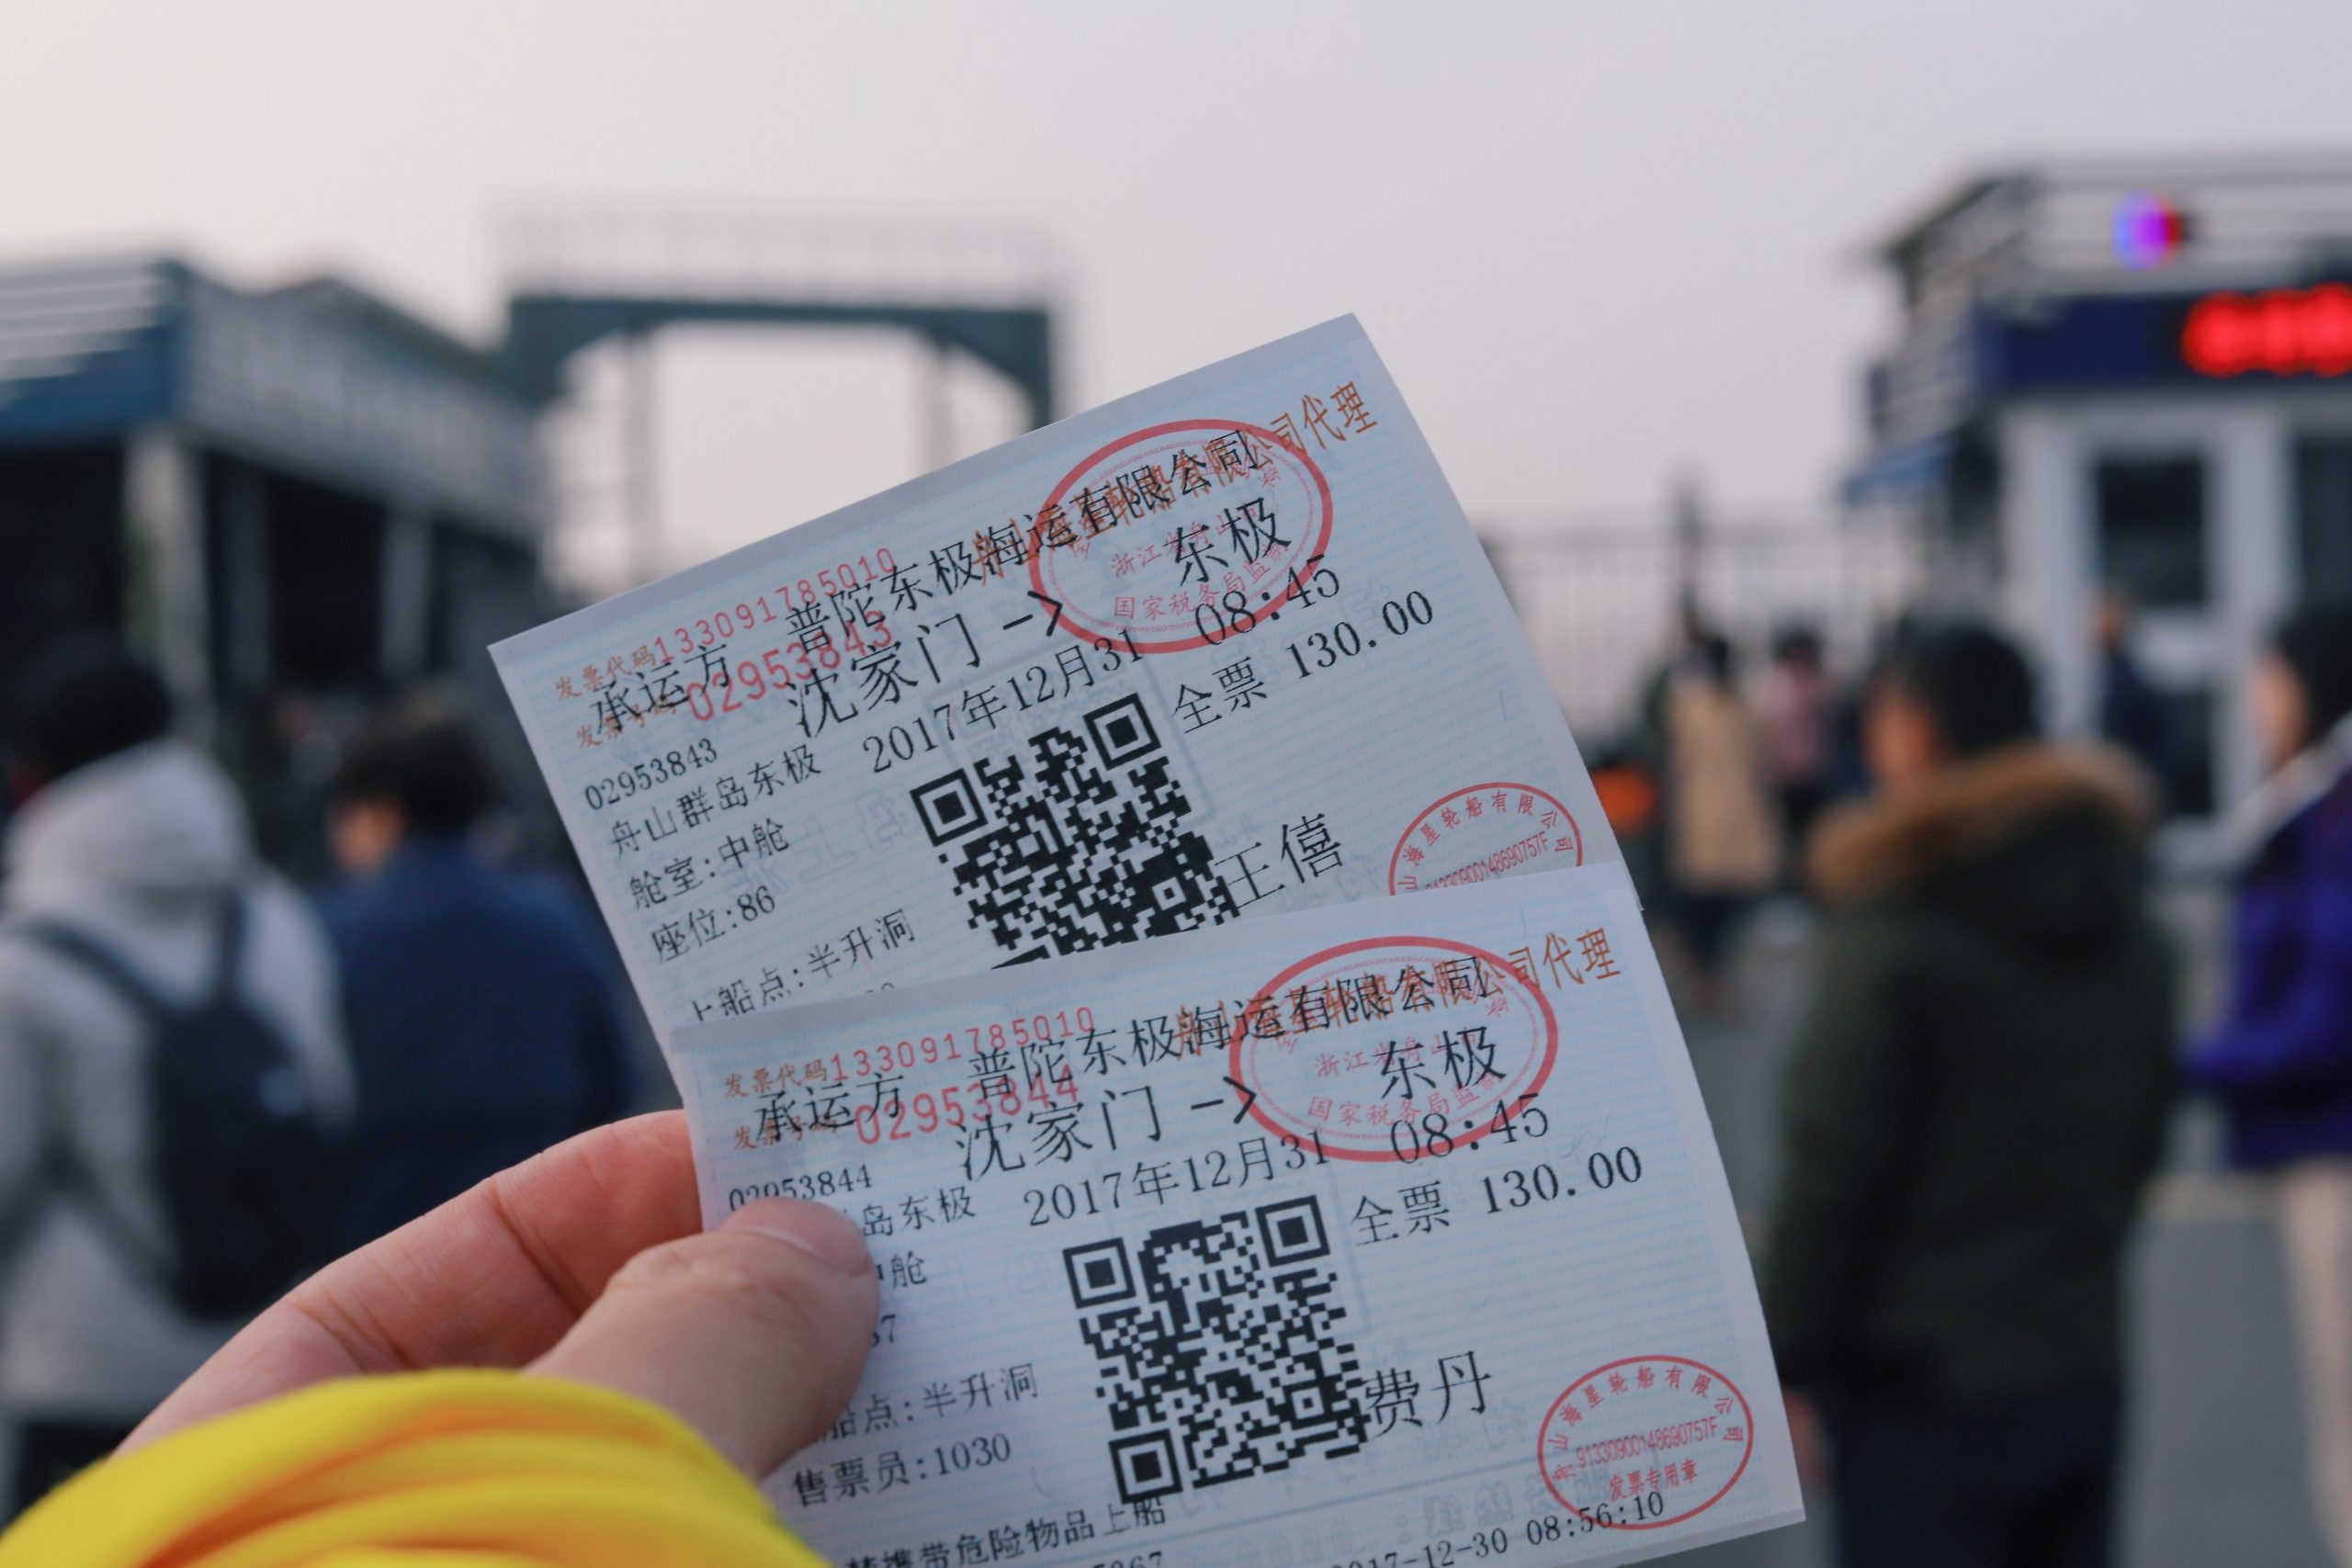 movie tickets: photo by Raychan on Unsplash